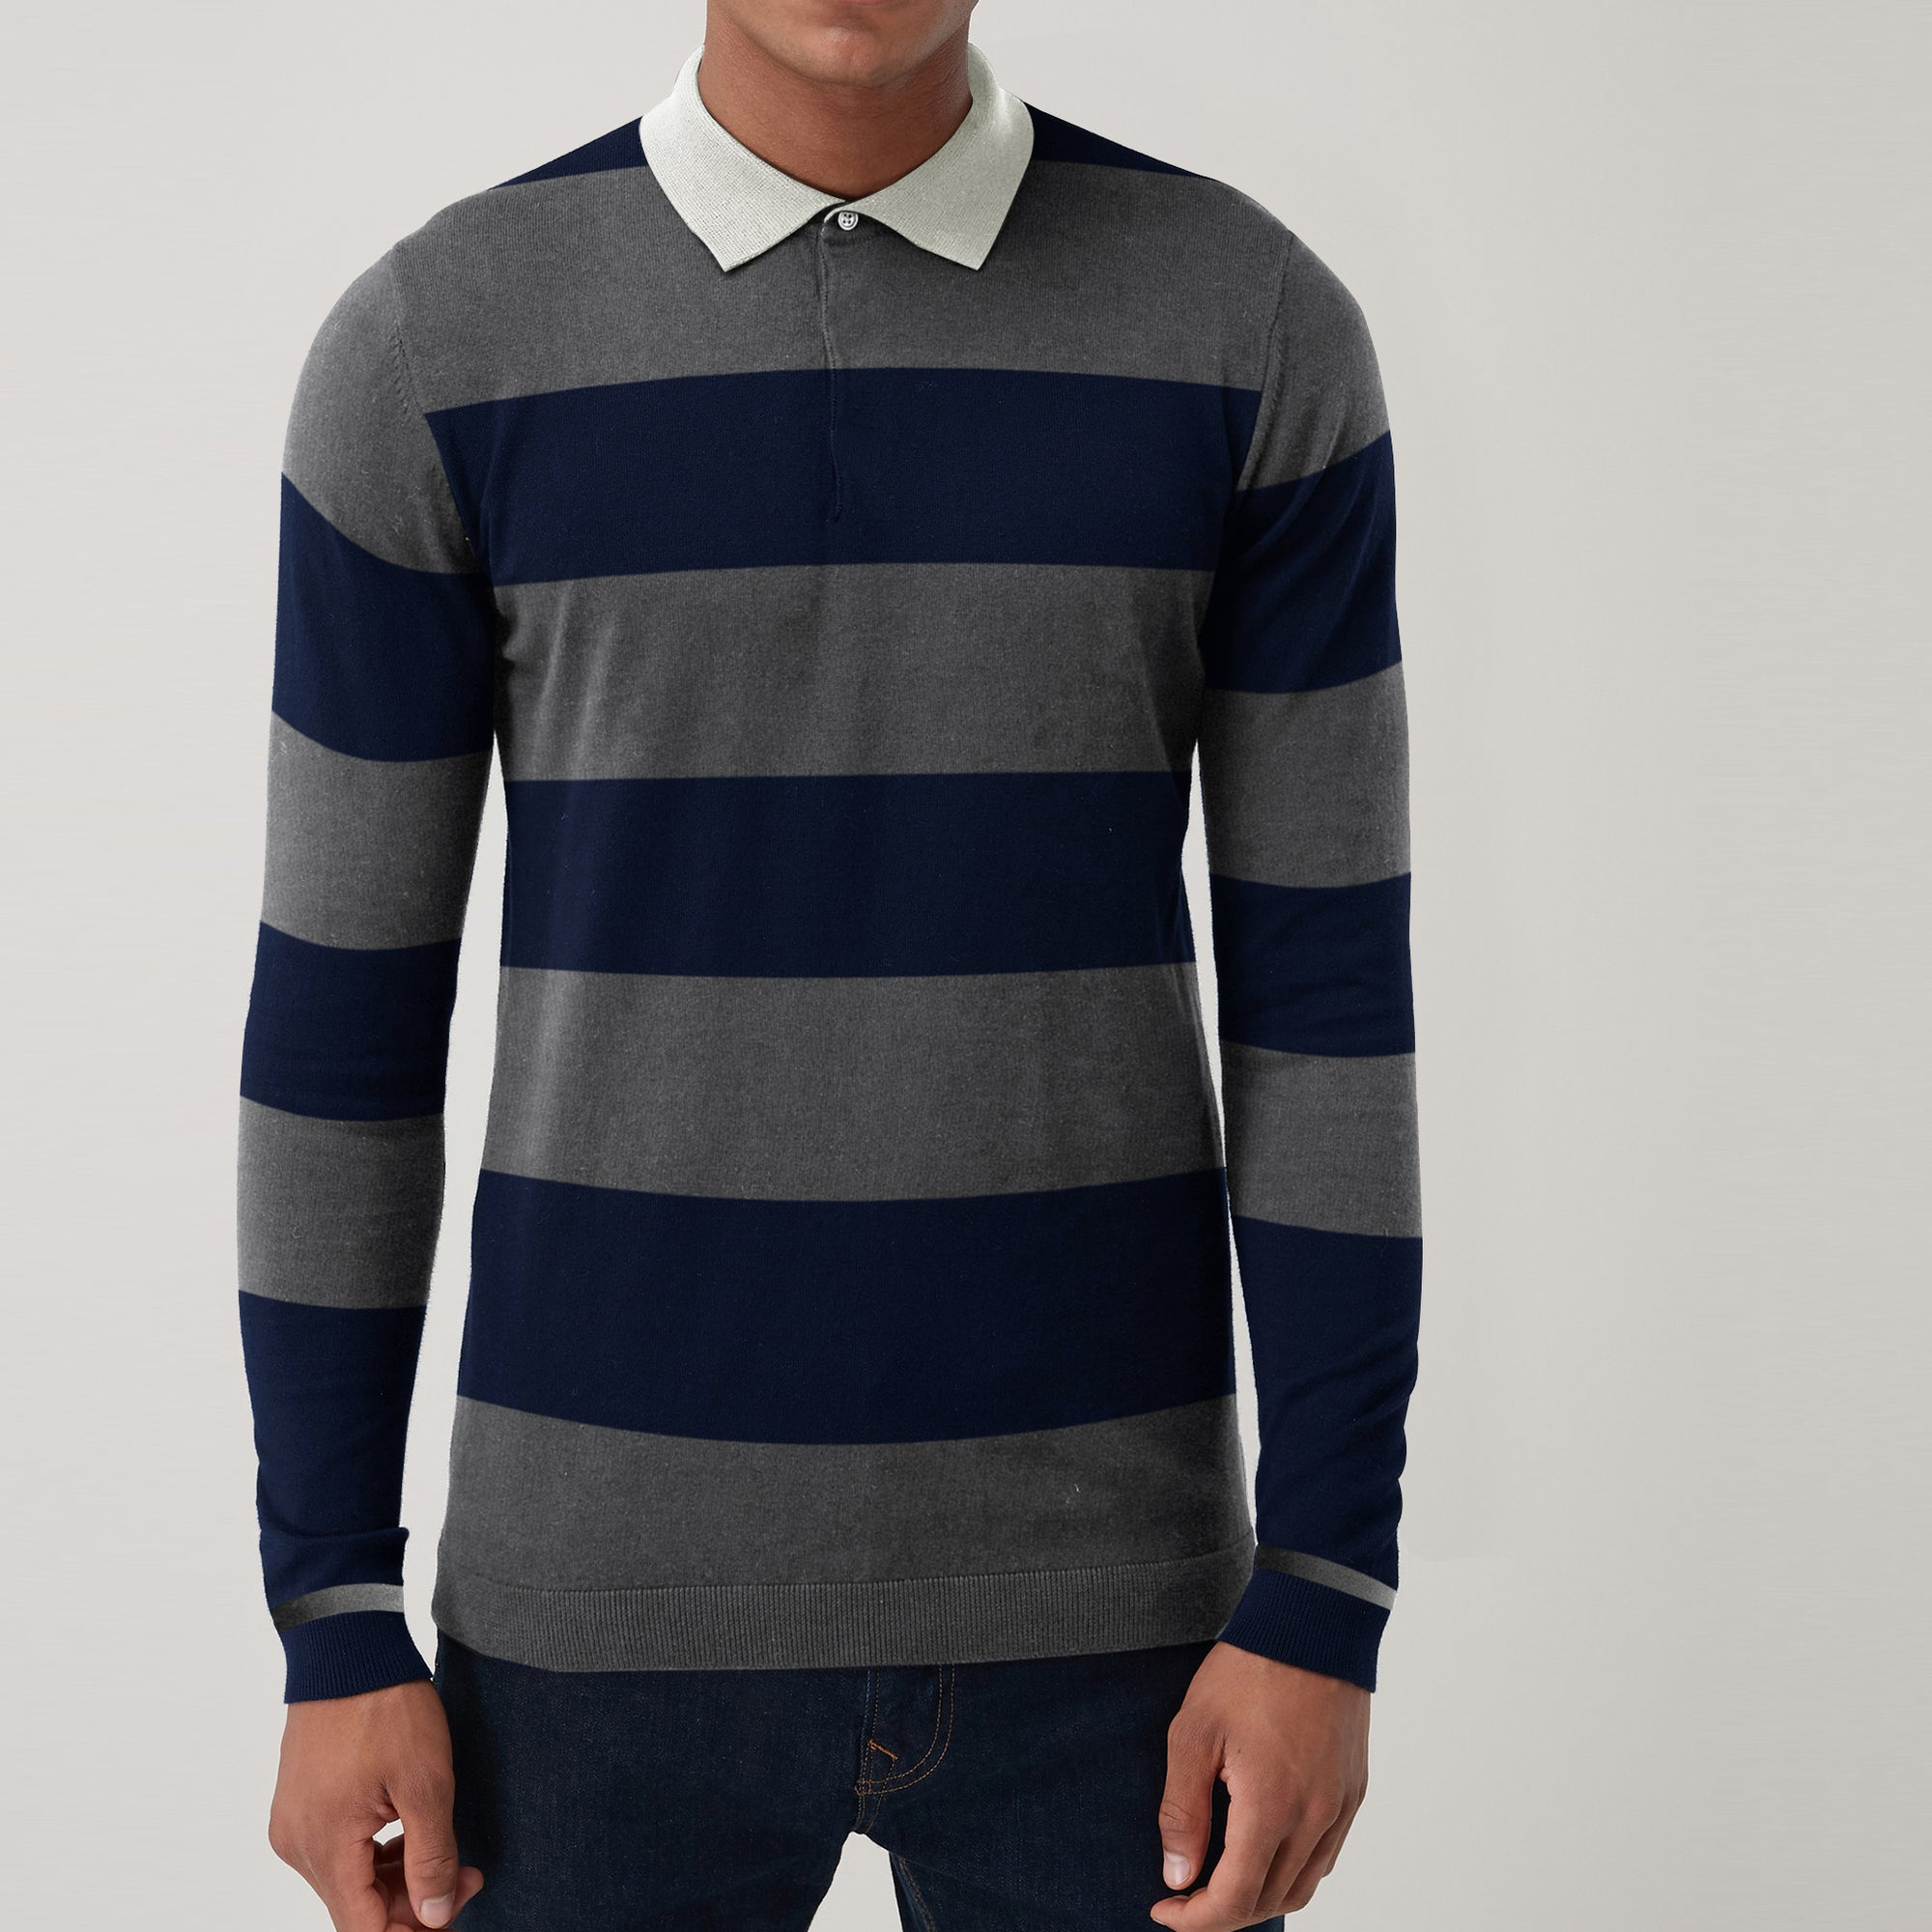 John Ashford Single Jersey Long  Sleeve Polo Shirt For Men-Dark Navy & Grey Stripe-SP282